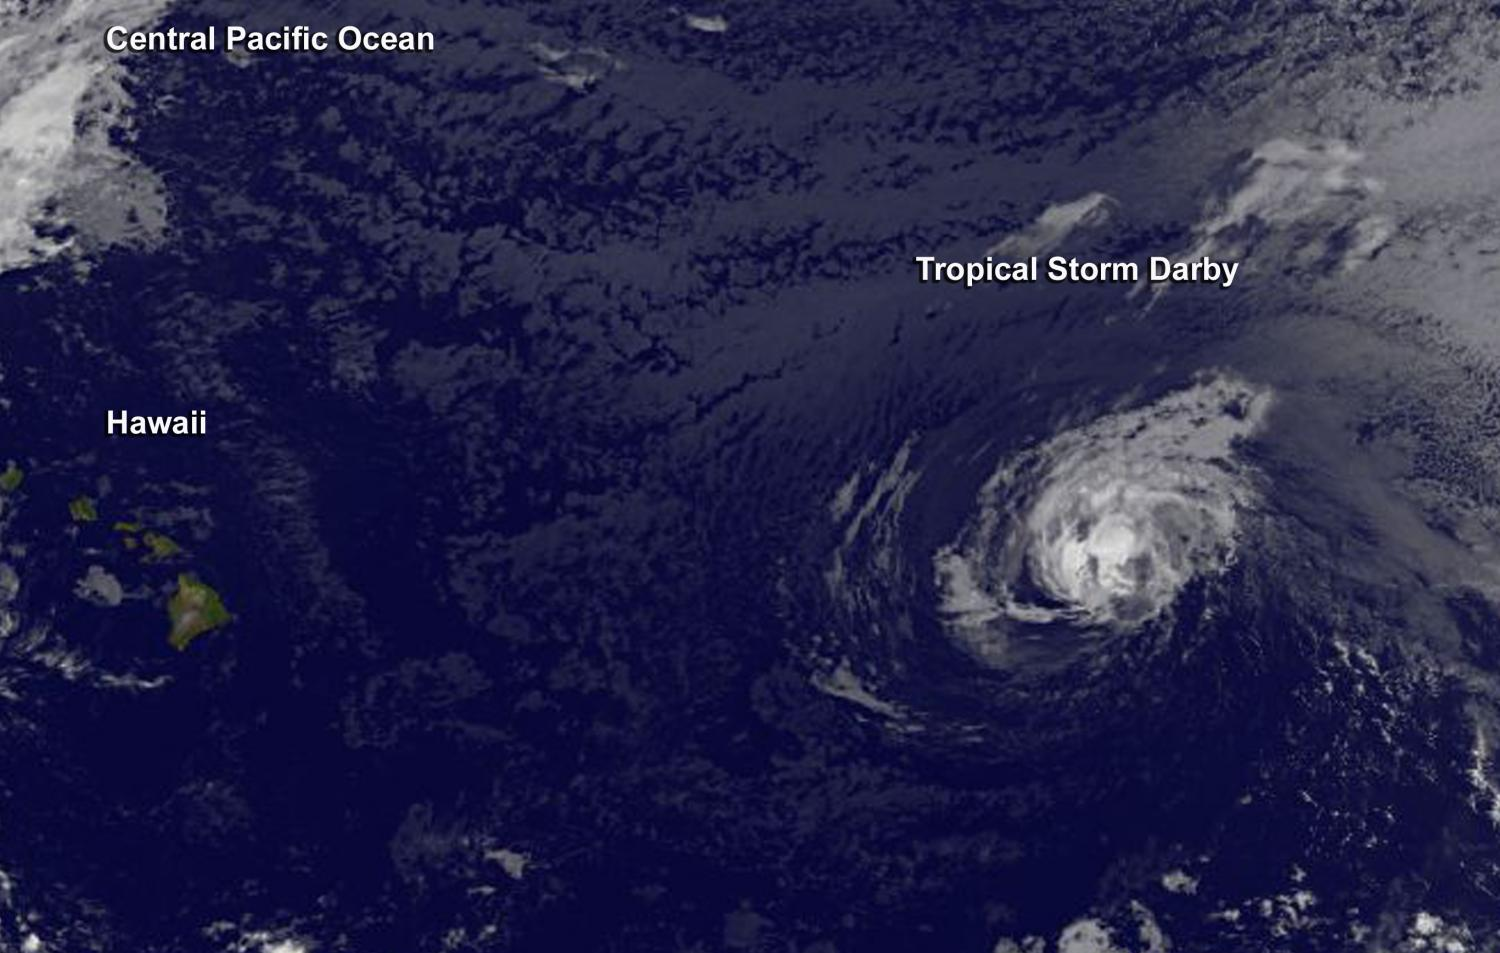 Hurricane Darby weakens on approach to Central Pacific Ocean